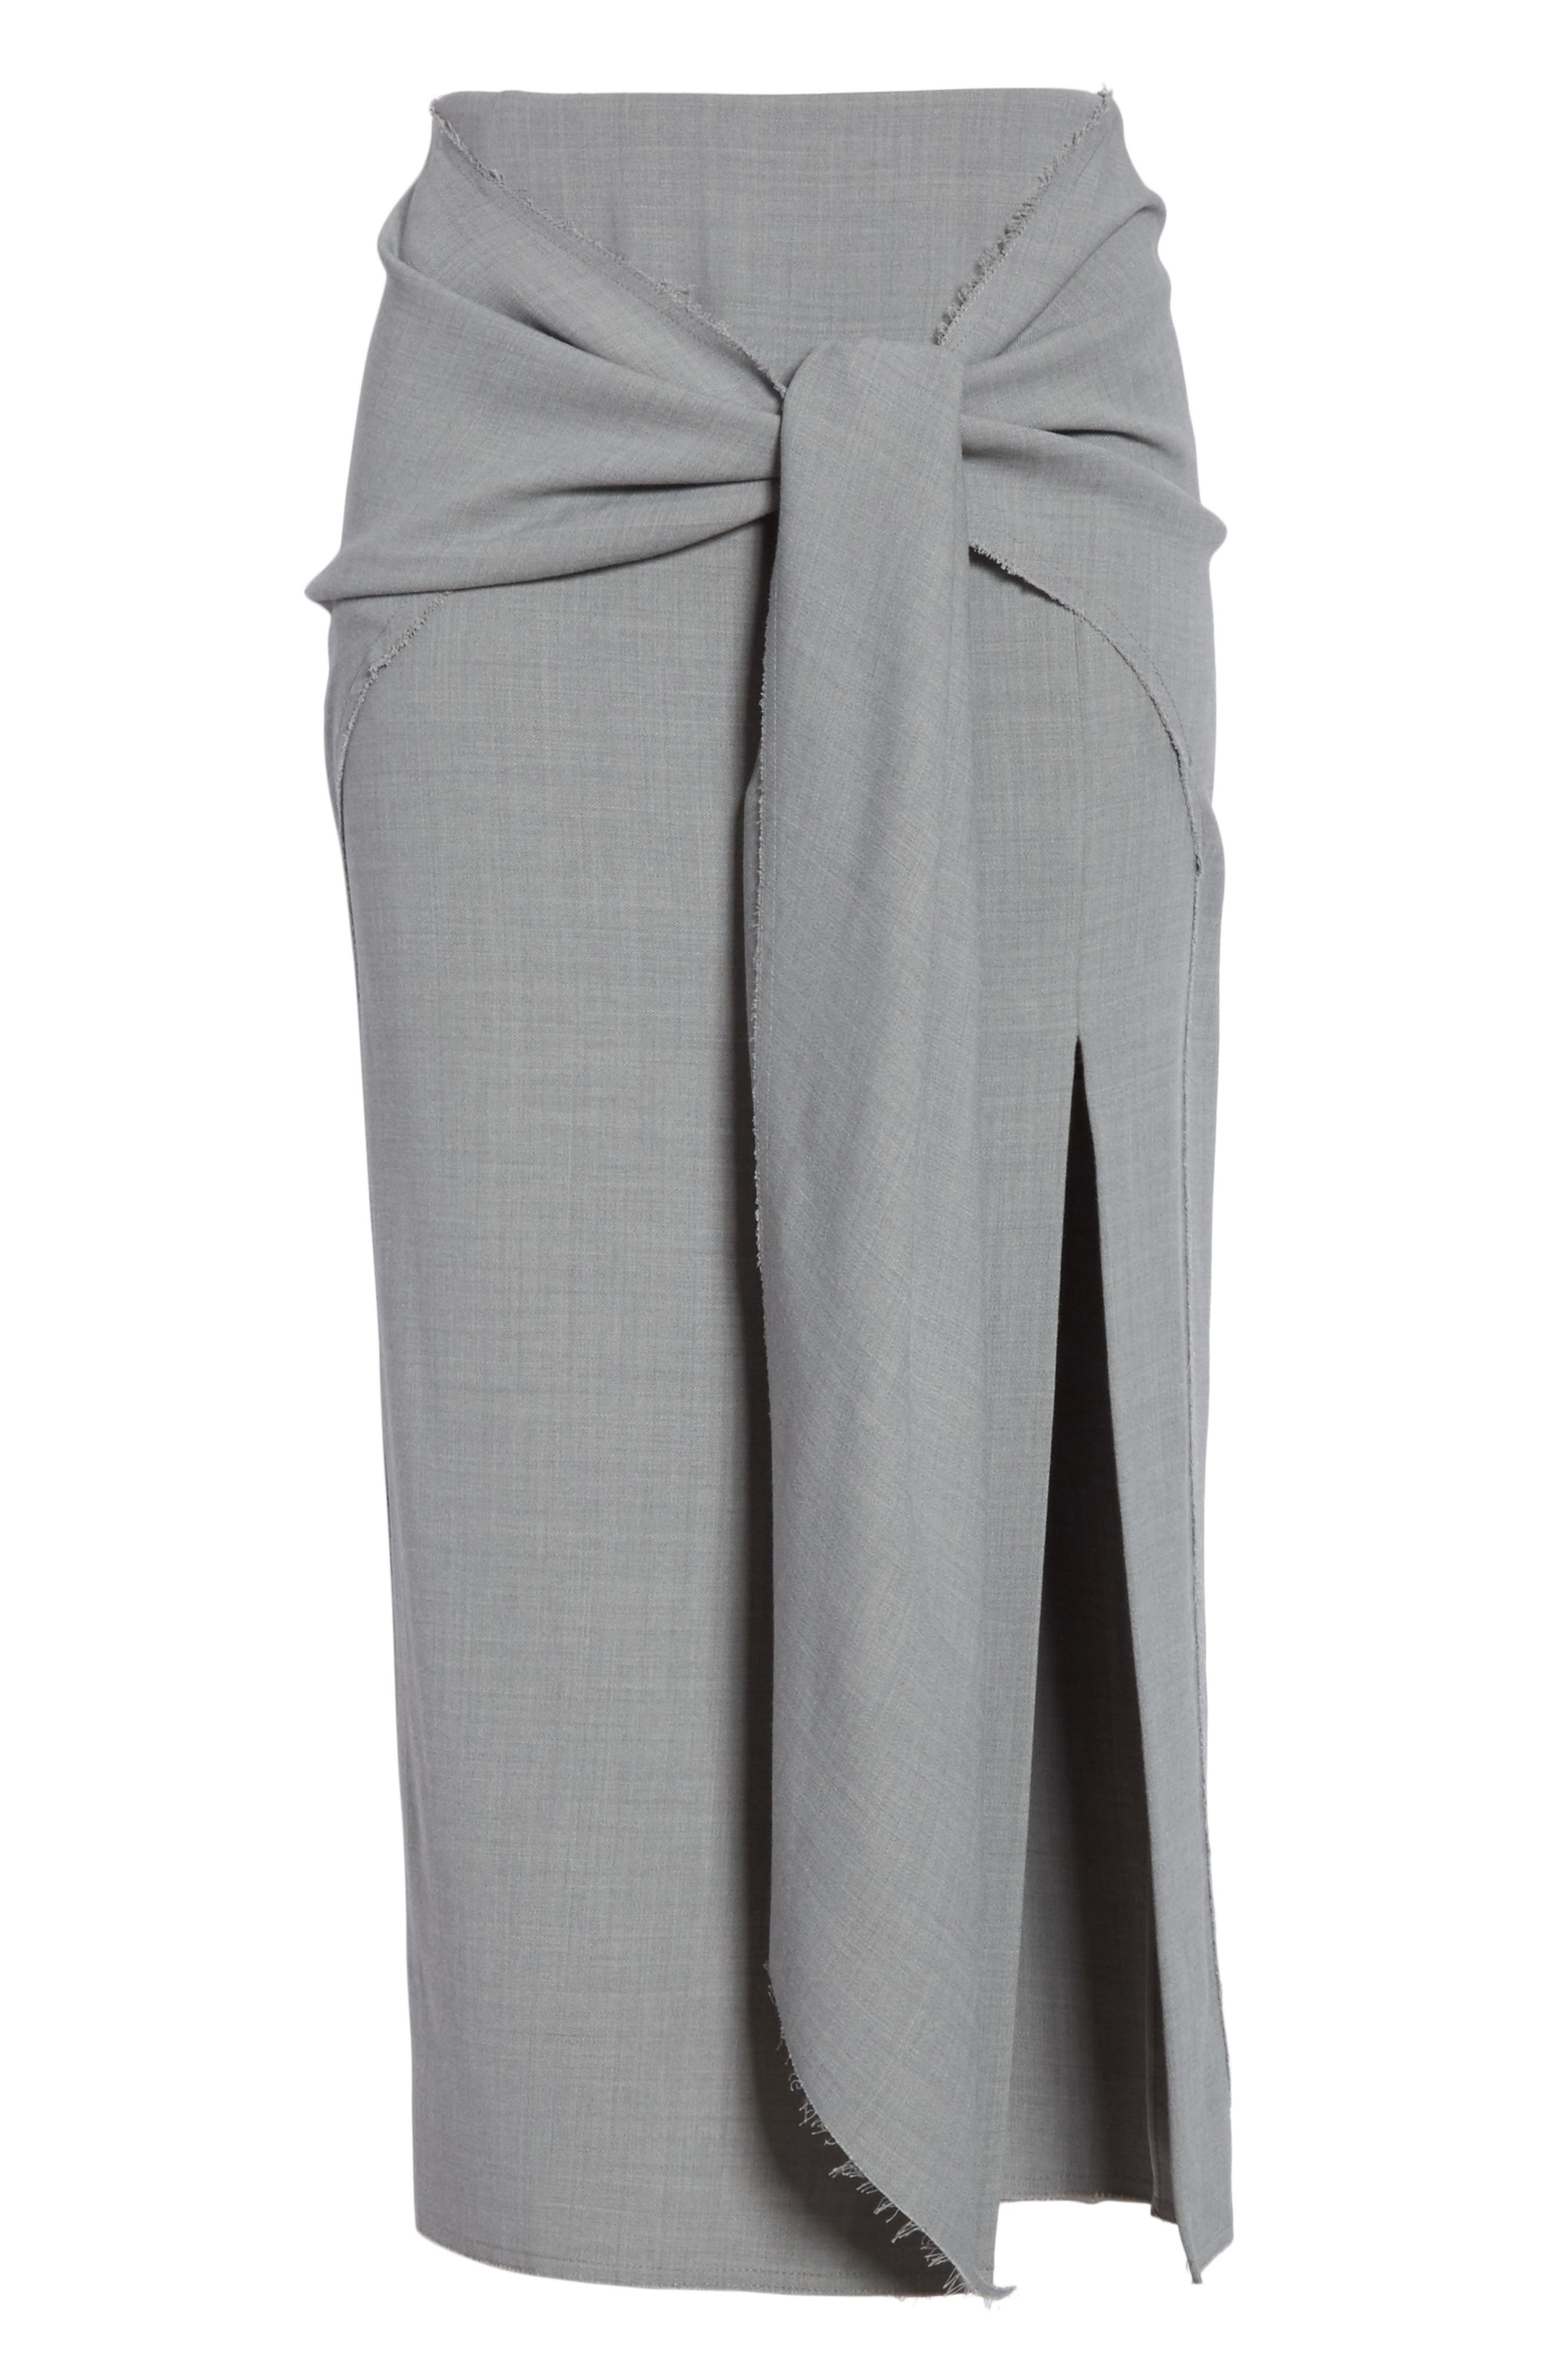 Jason Wu Raw Hem Tie Front Skirt,                             Alternate thumbnail 6, color,                             058